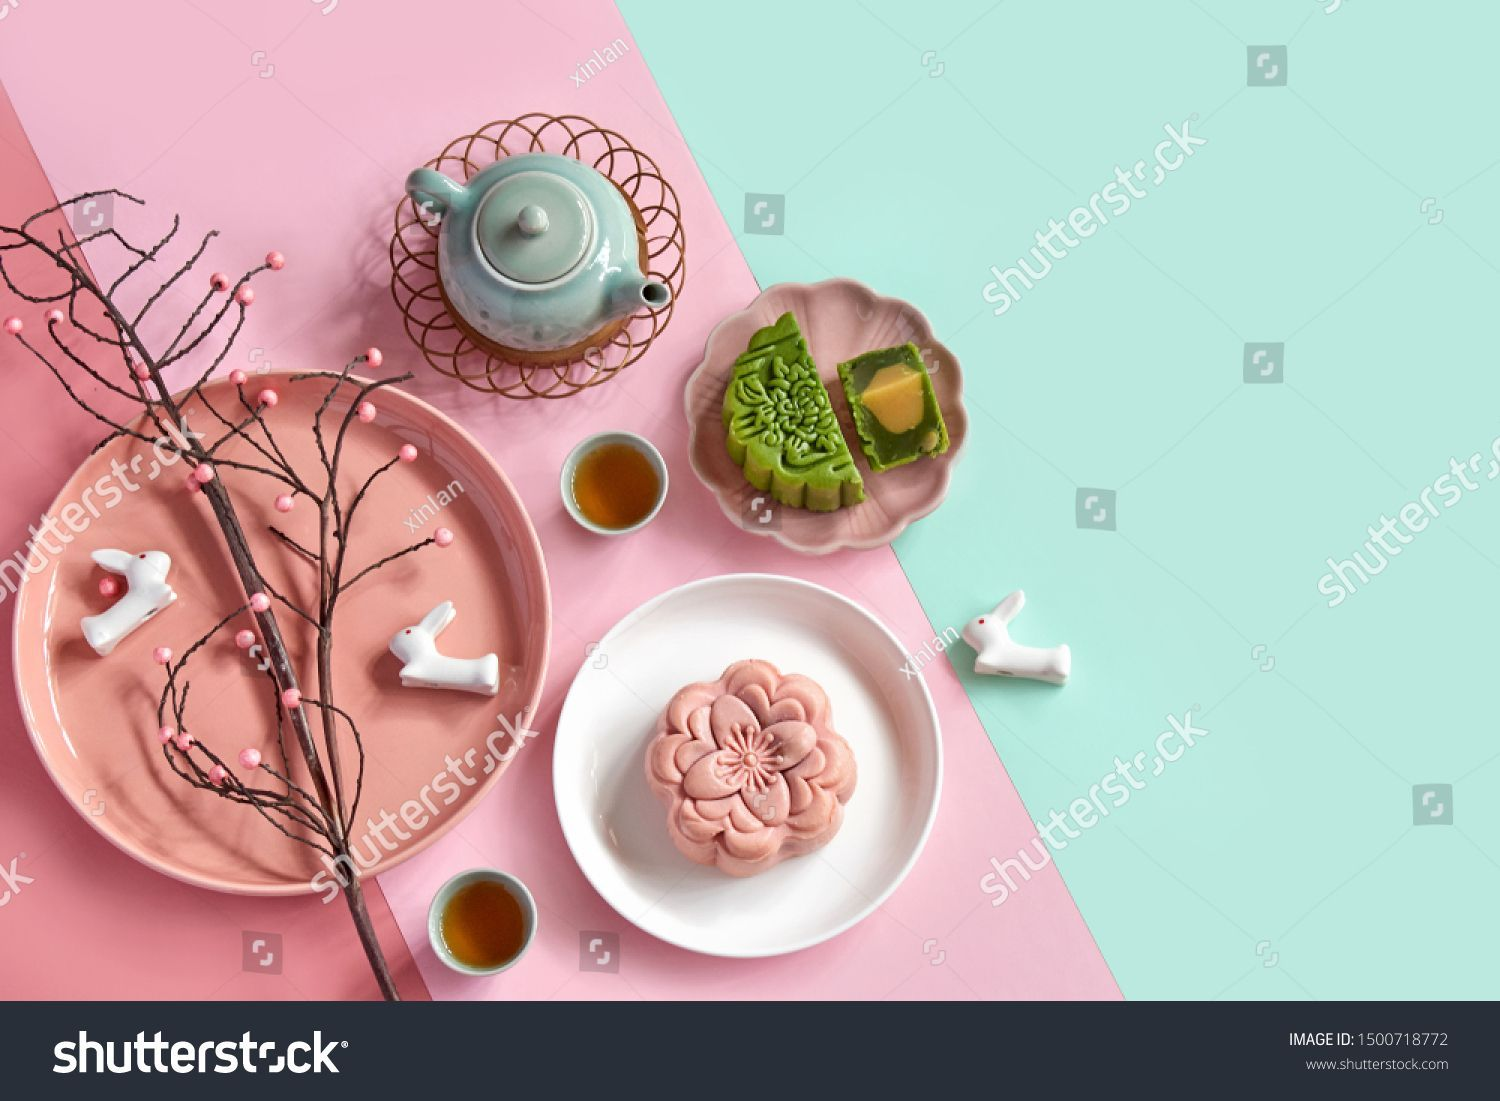 Mid Autumn Festival Moon Cake Serve Stock Photo (Edit Now) 1500718772 #mooncake Mid autumn festival. Moon cake serve on plate with decoration isolated on colorful background. #Sponsored , #affiliate, #Moon#cake#festival#Mid #mooncake